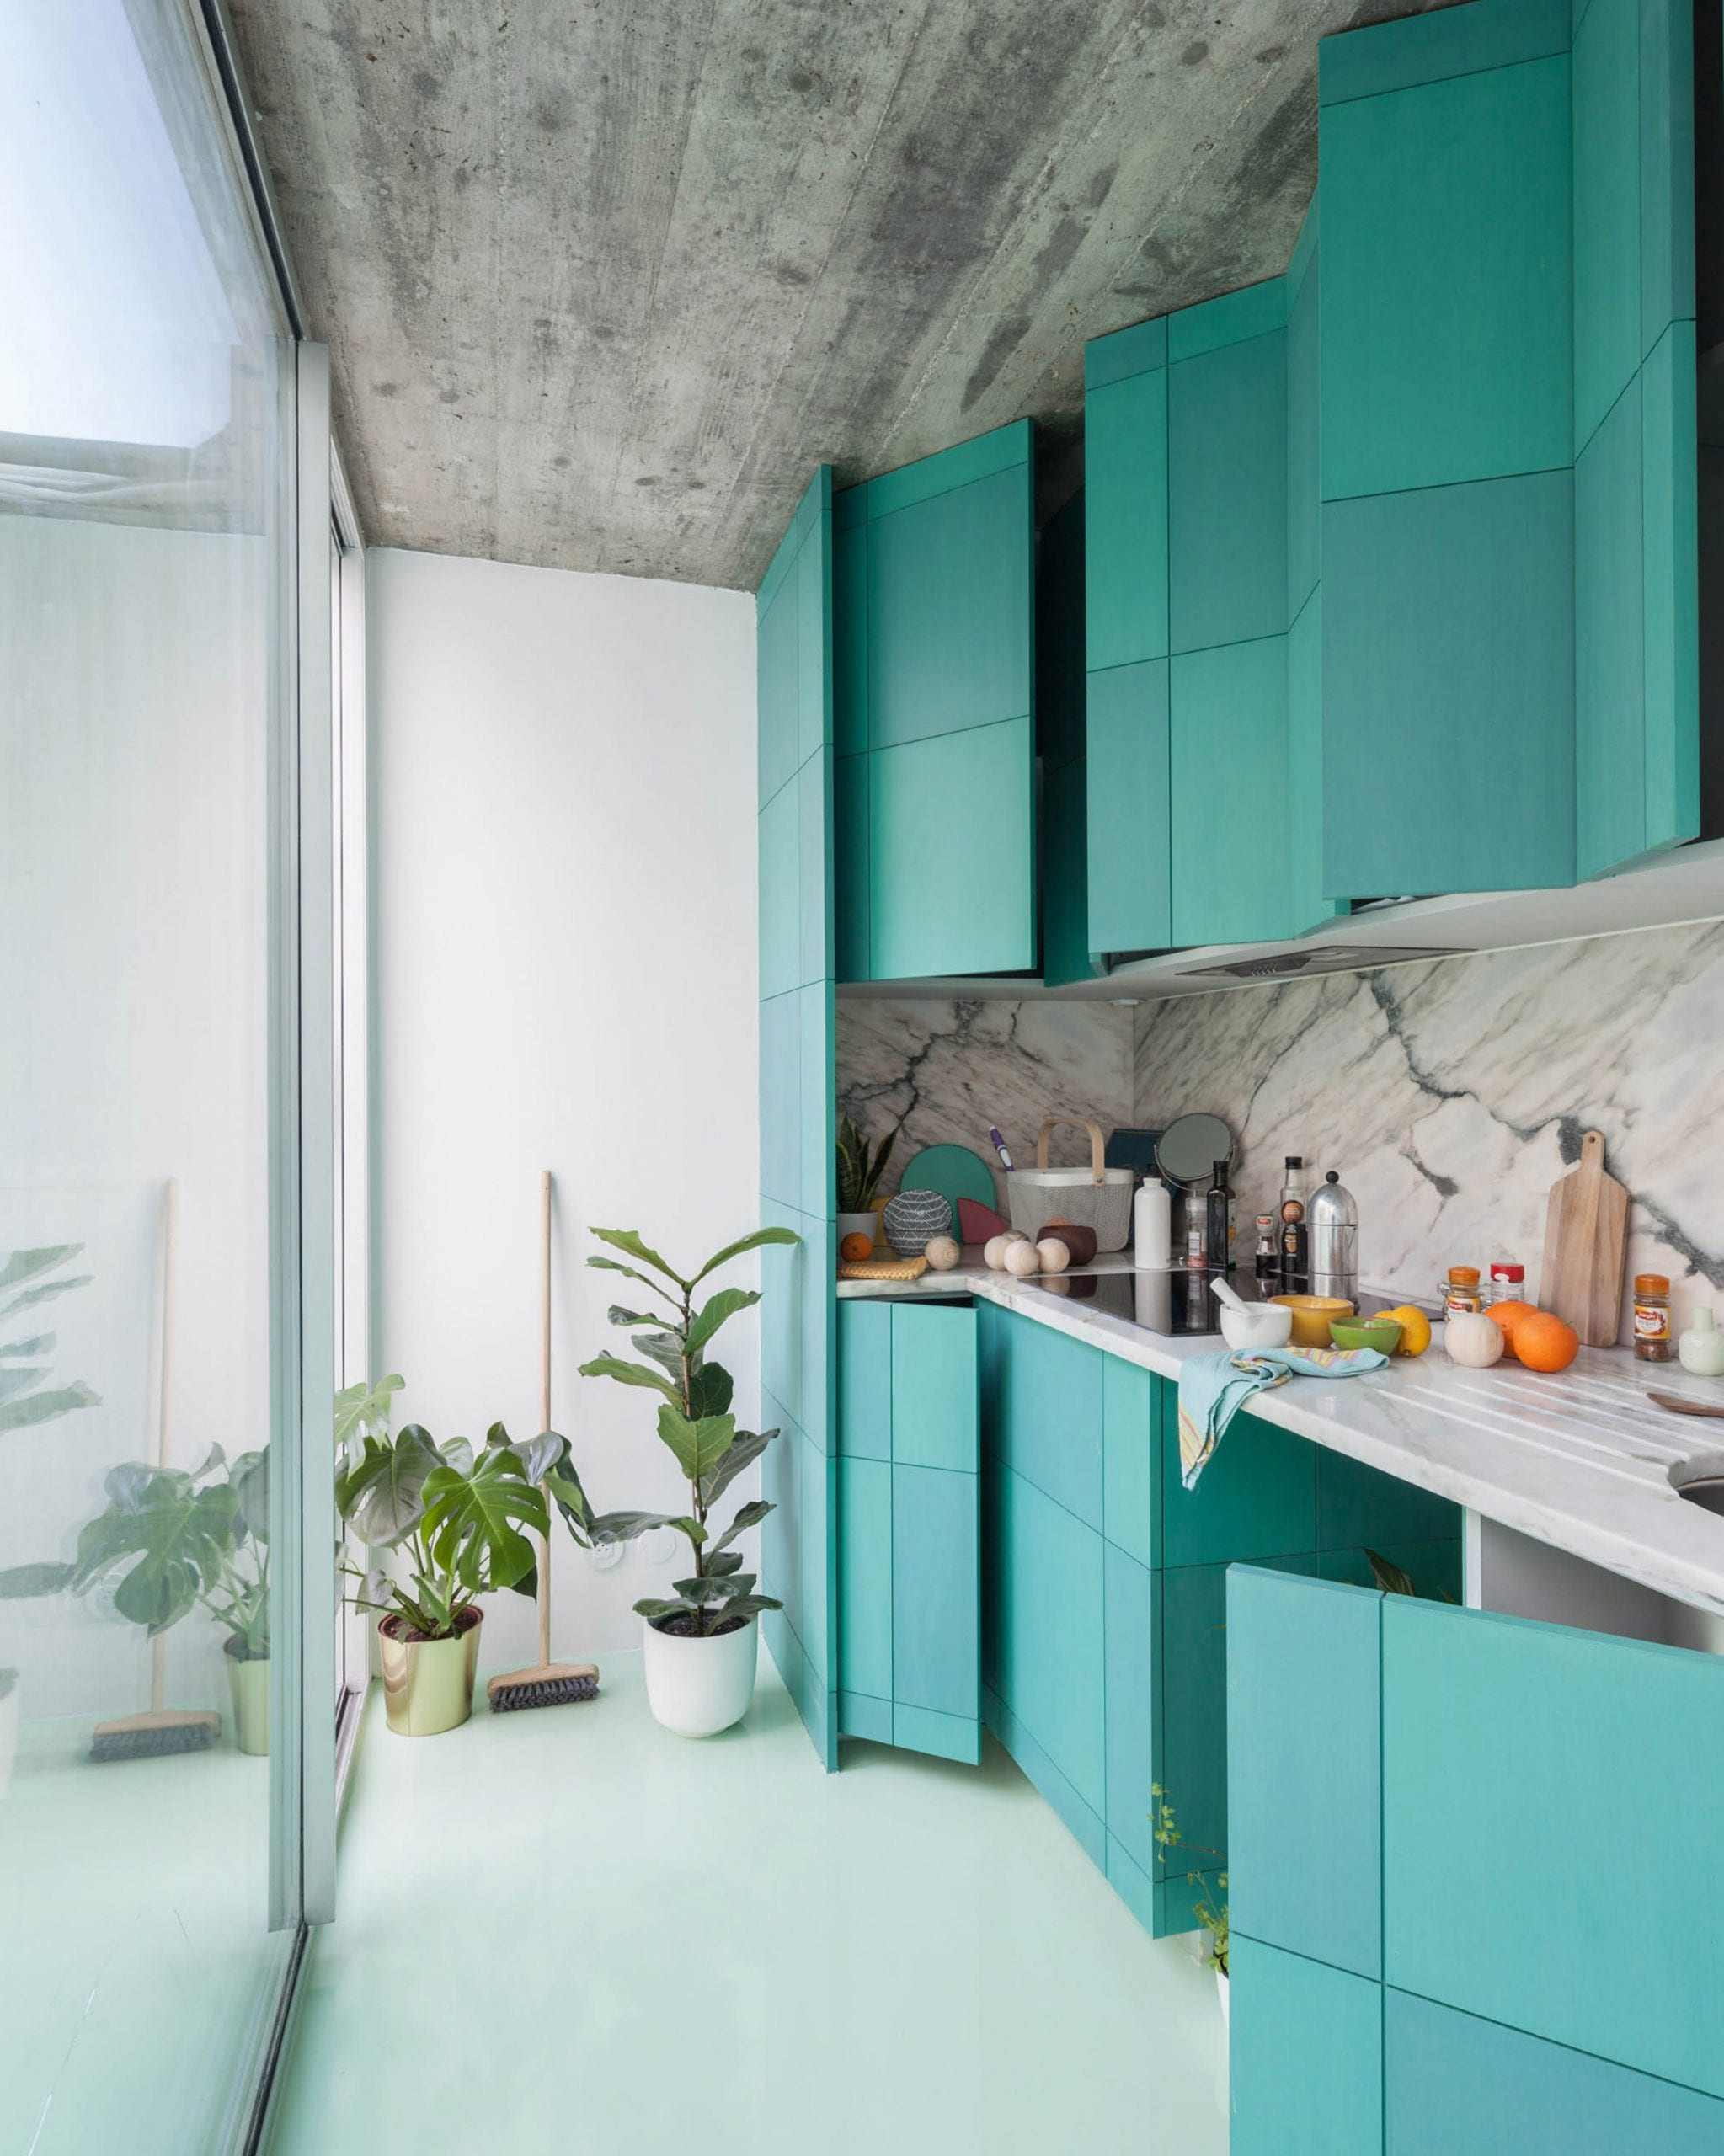 Fala Atelier oriented the one-wall kitchen toward a courtyard